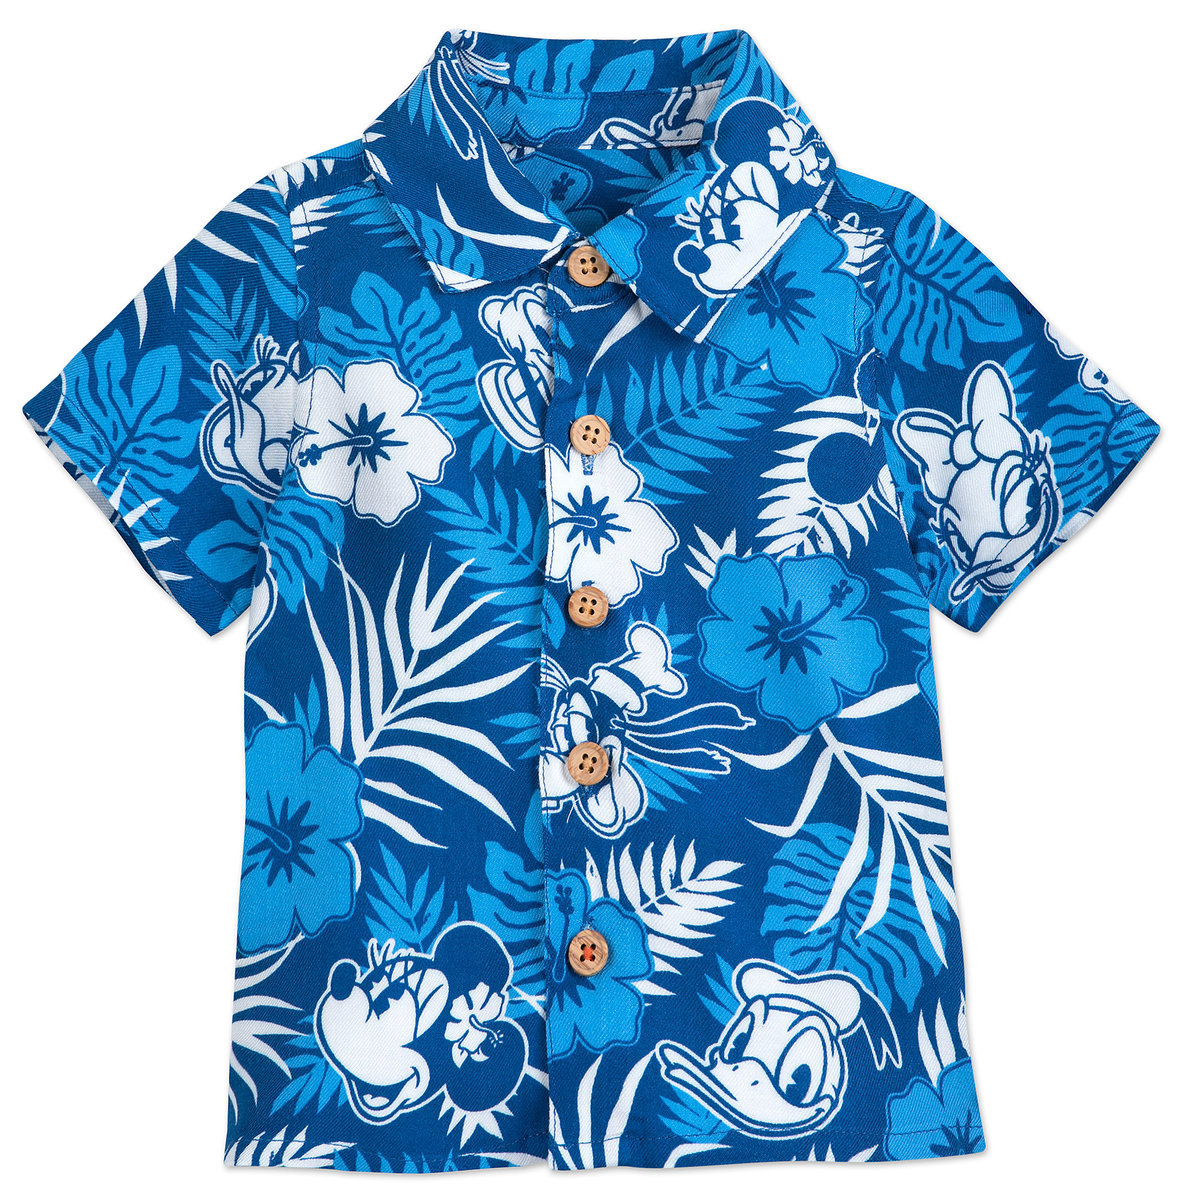 0d3af707 Product Image of Mickey Mouse and Friends Aloha Shirt for Baby - Disney  Hawaii # 1